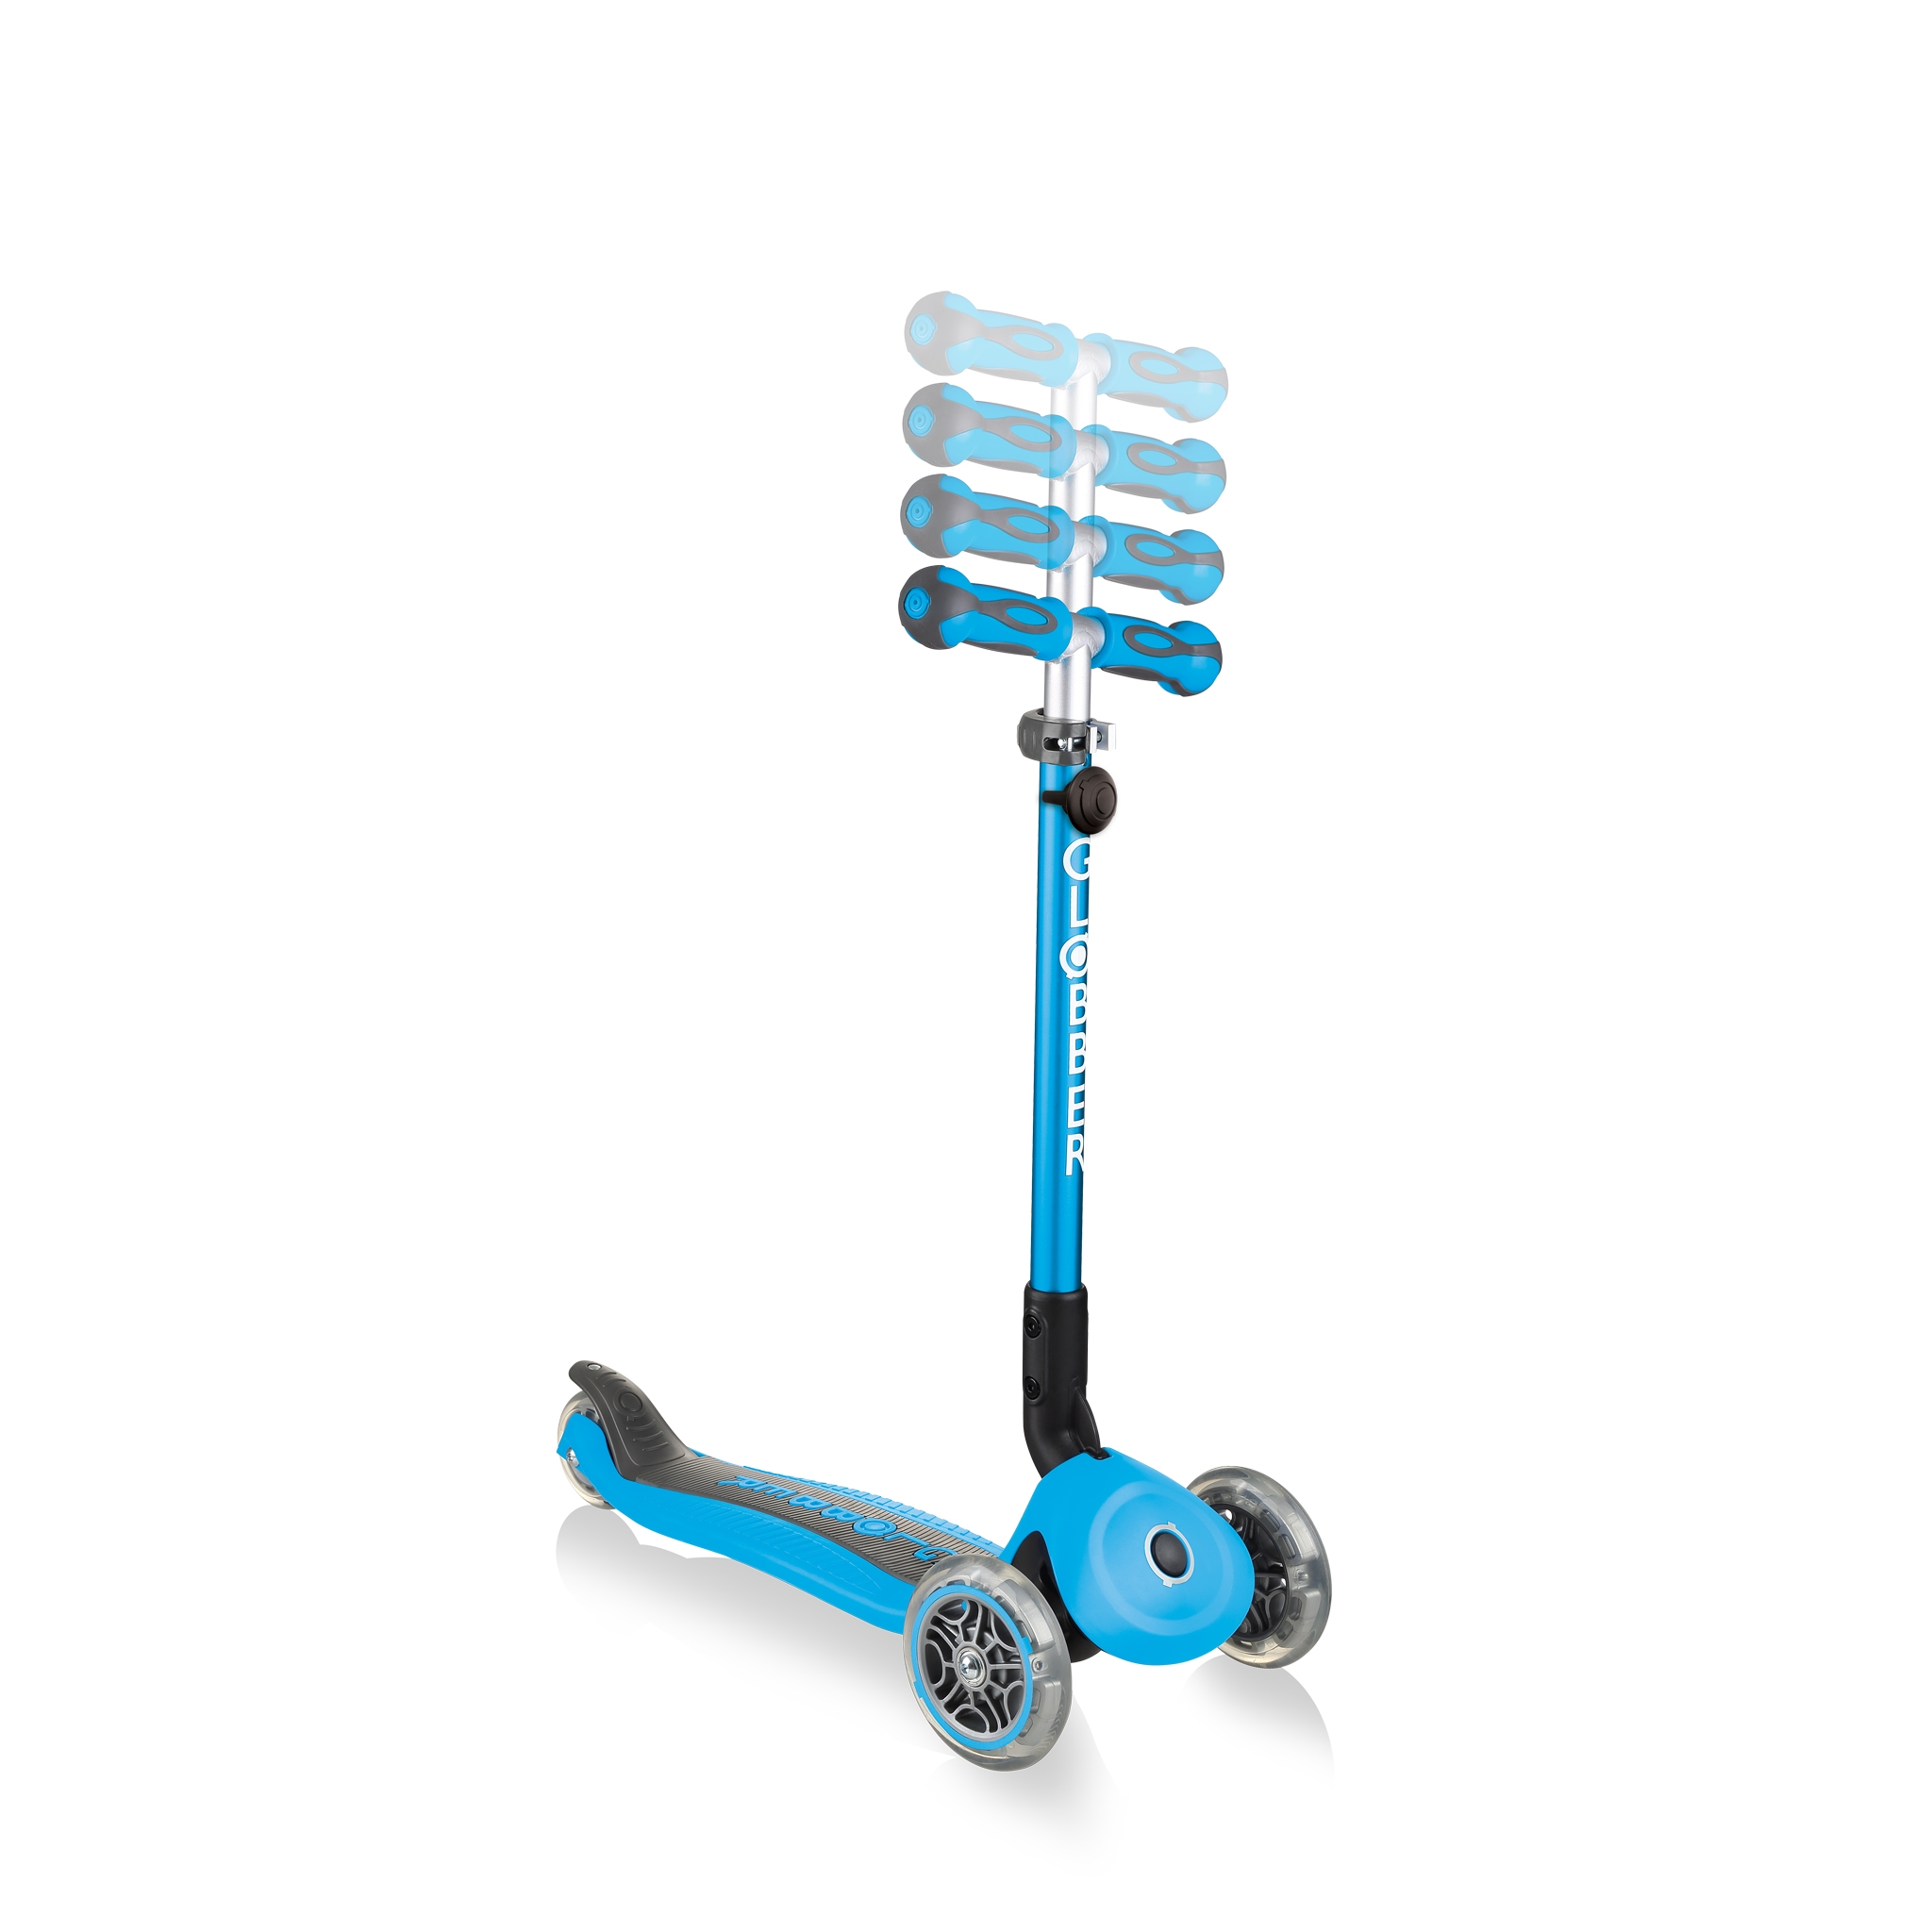 GO-UP-DELUXE-GO-UP-DELUXE-ride-on-walking-bike-scooter-with-4-height-adjustable-T-bar-sky-blue 4